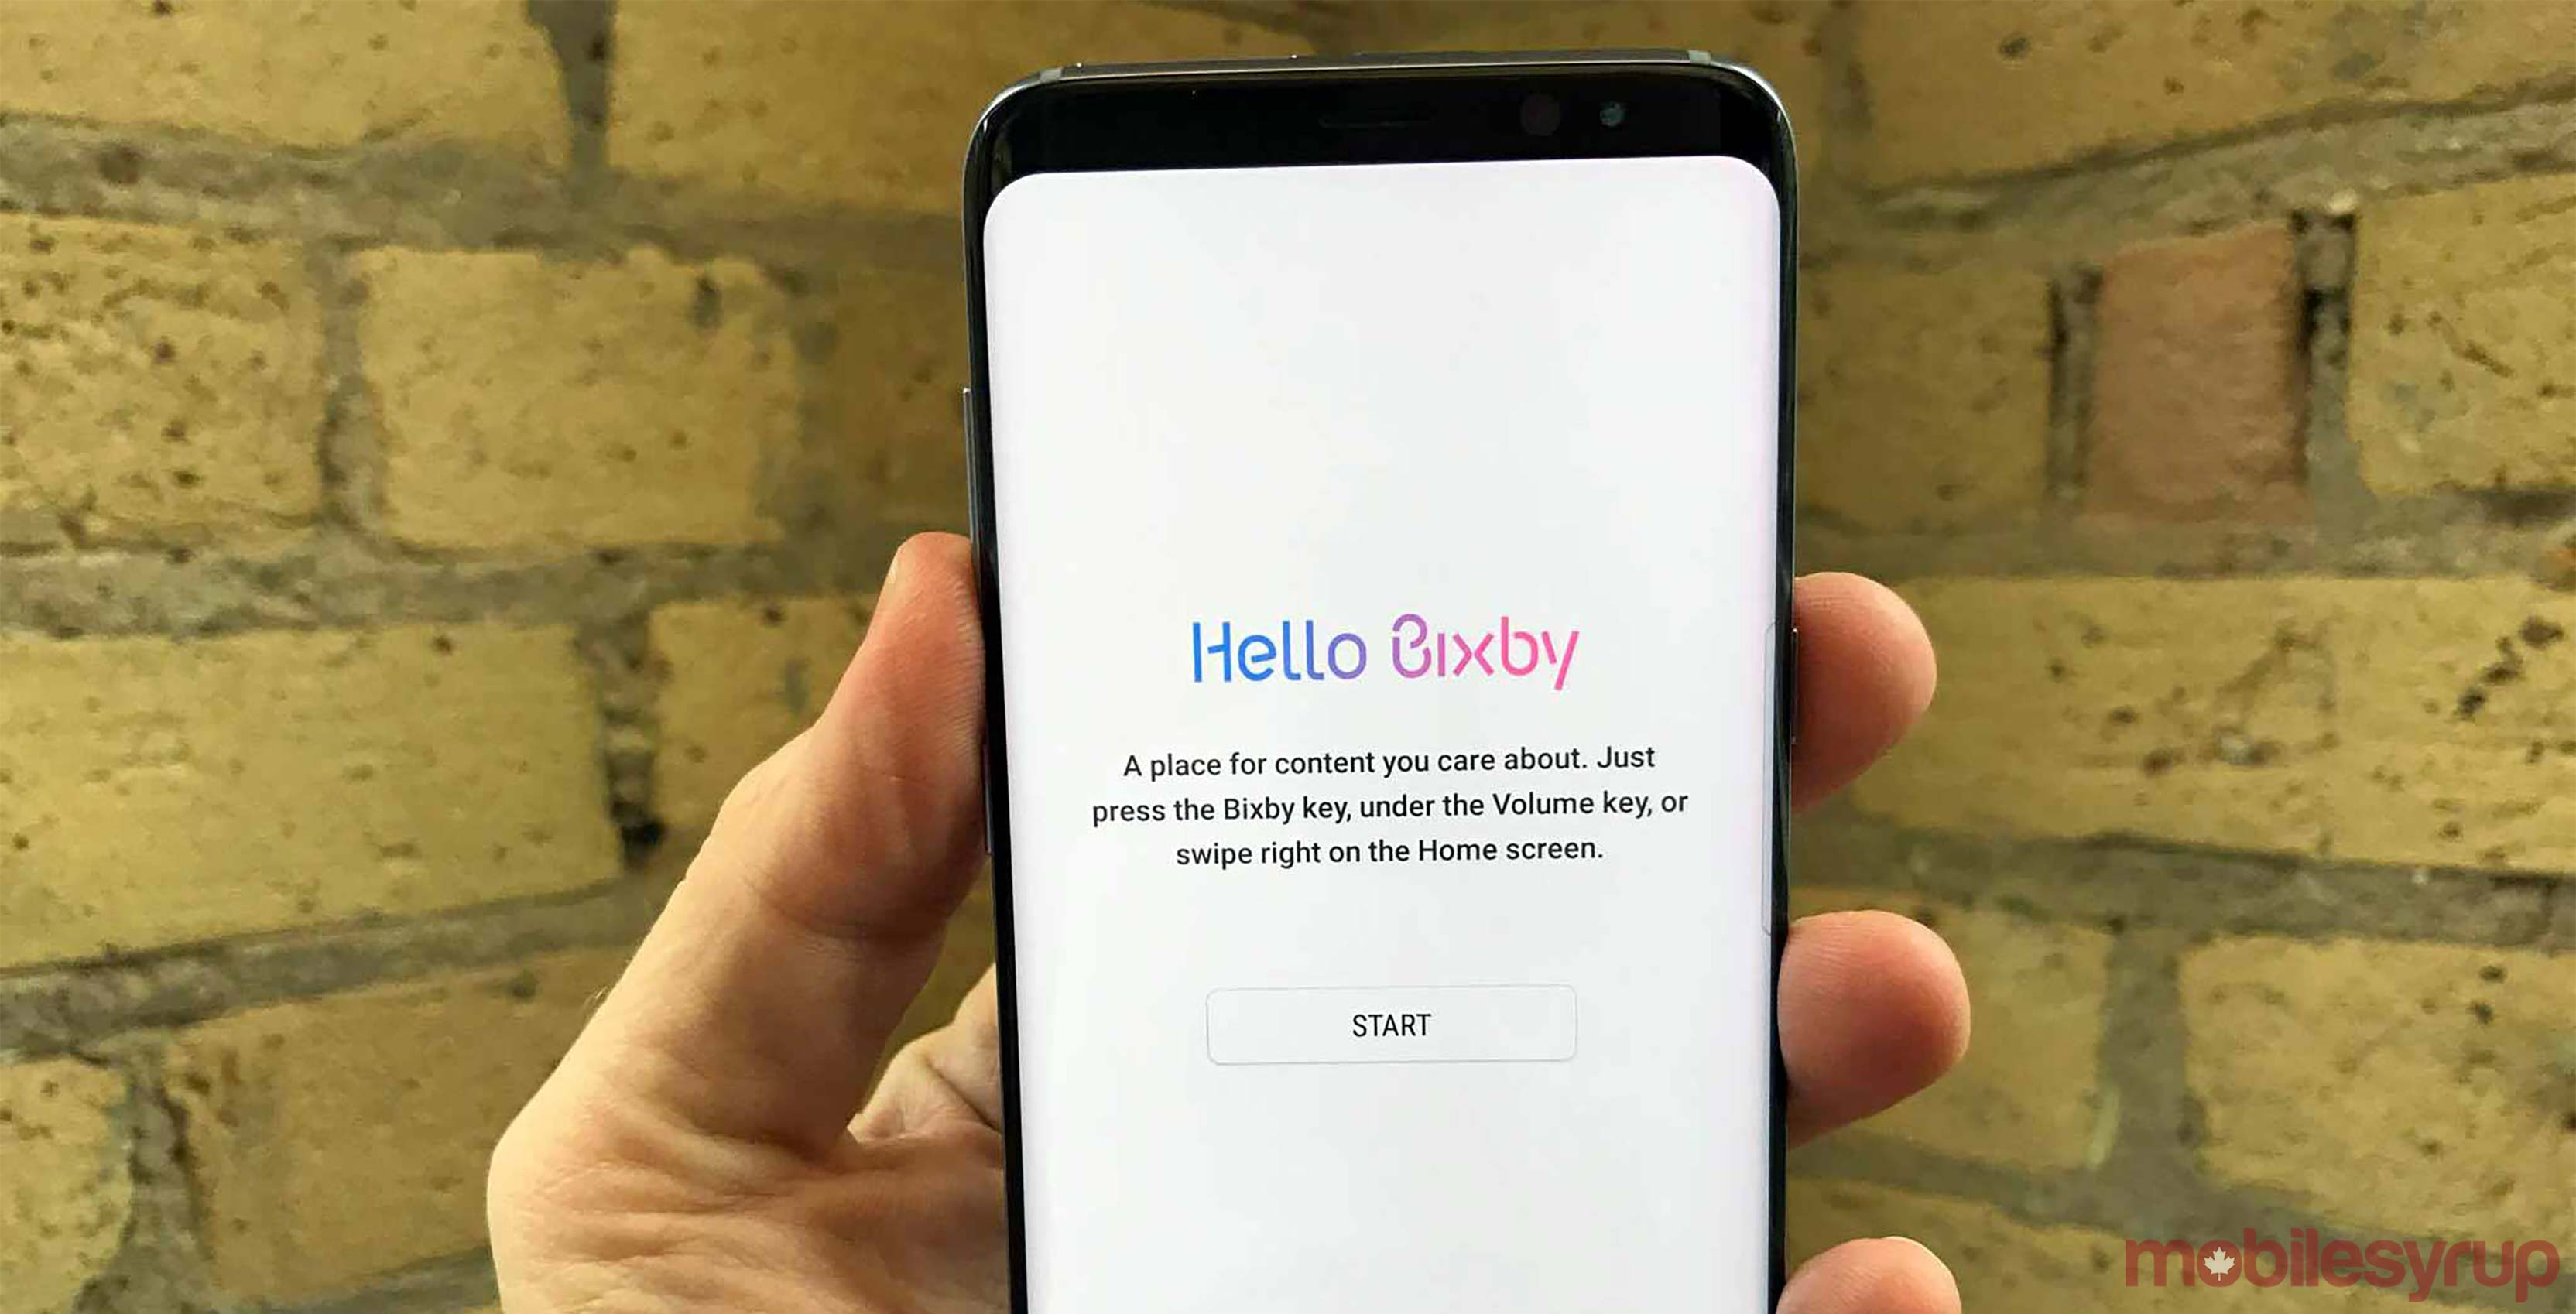 Bixby on phone in hand